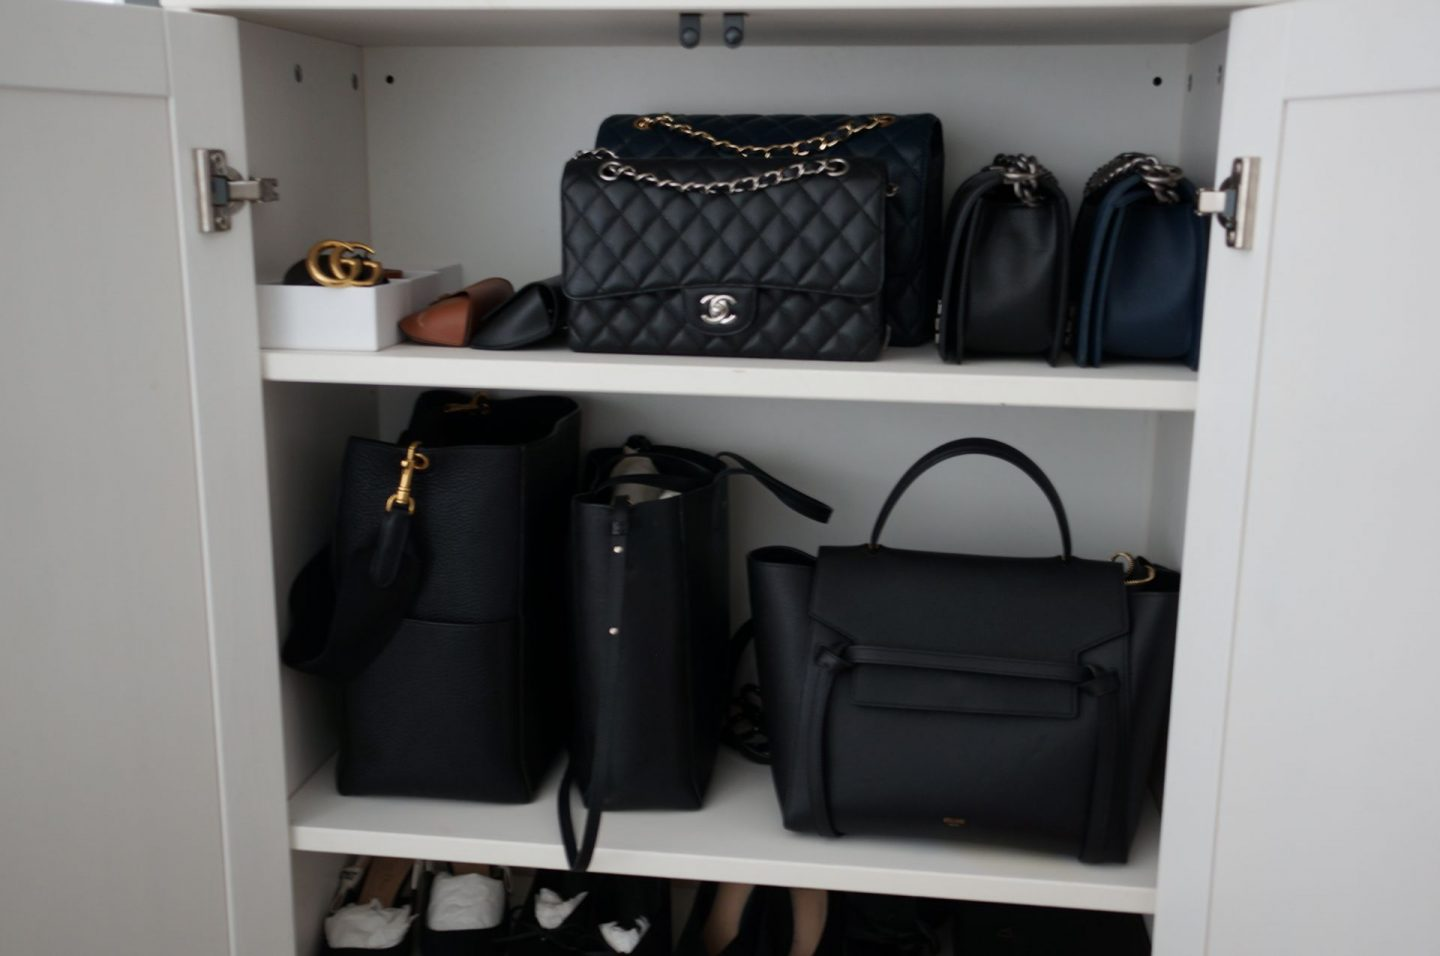 close up photo of inside wardrobe with designer handbags and accessories in blog post about caring for your handbags so they last